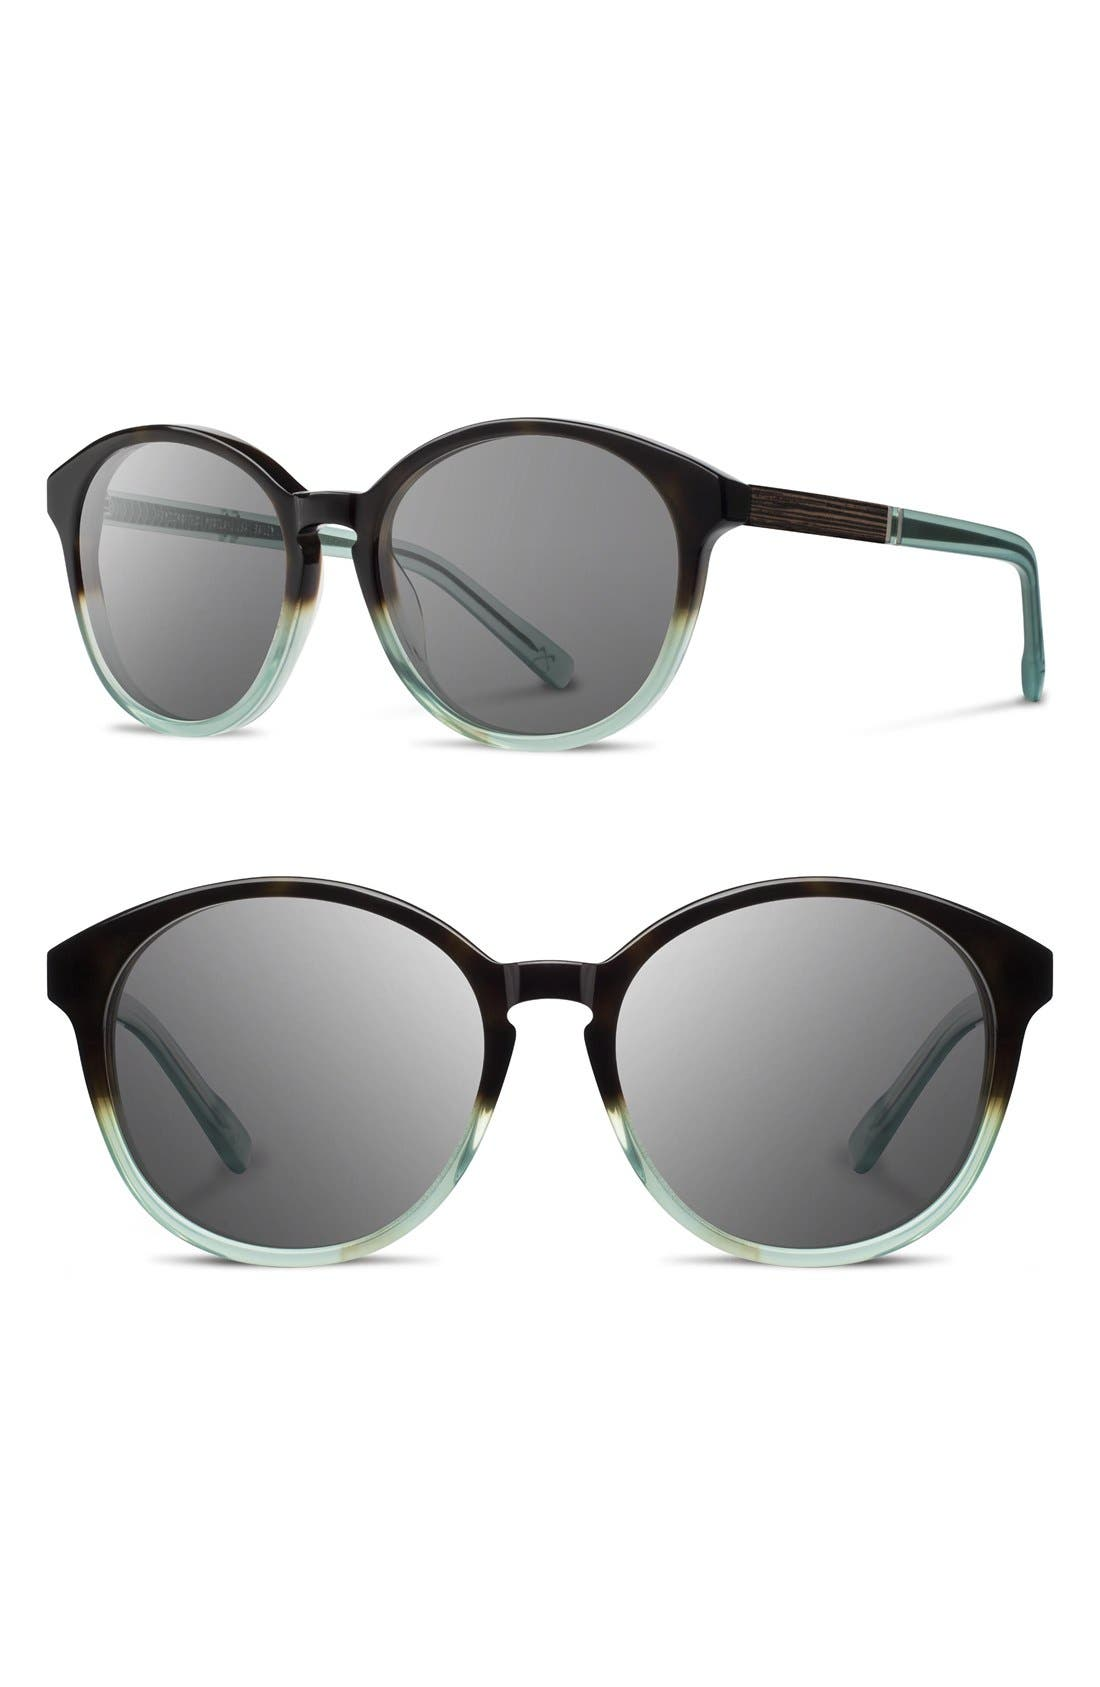 Alternate Image 1 Selected - Shwood 'Bailey' 53mm Round Sunglasses